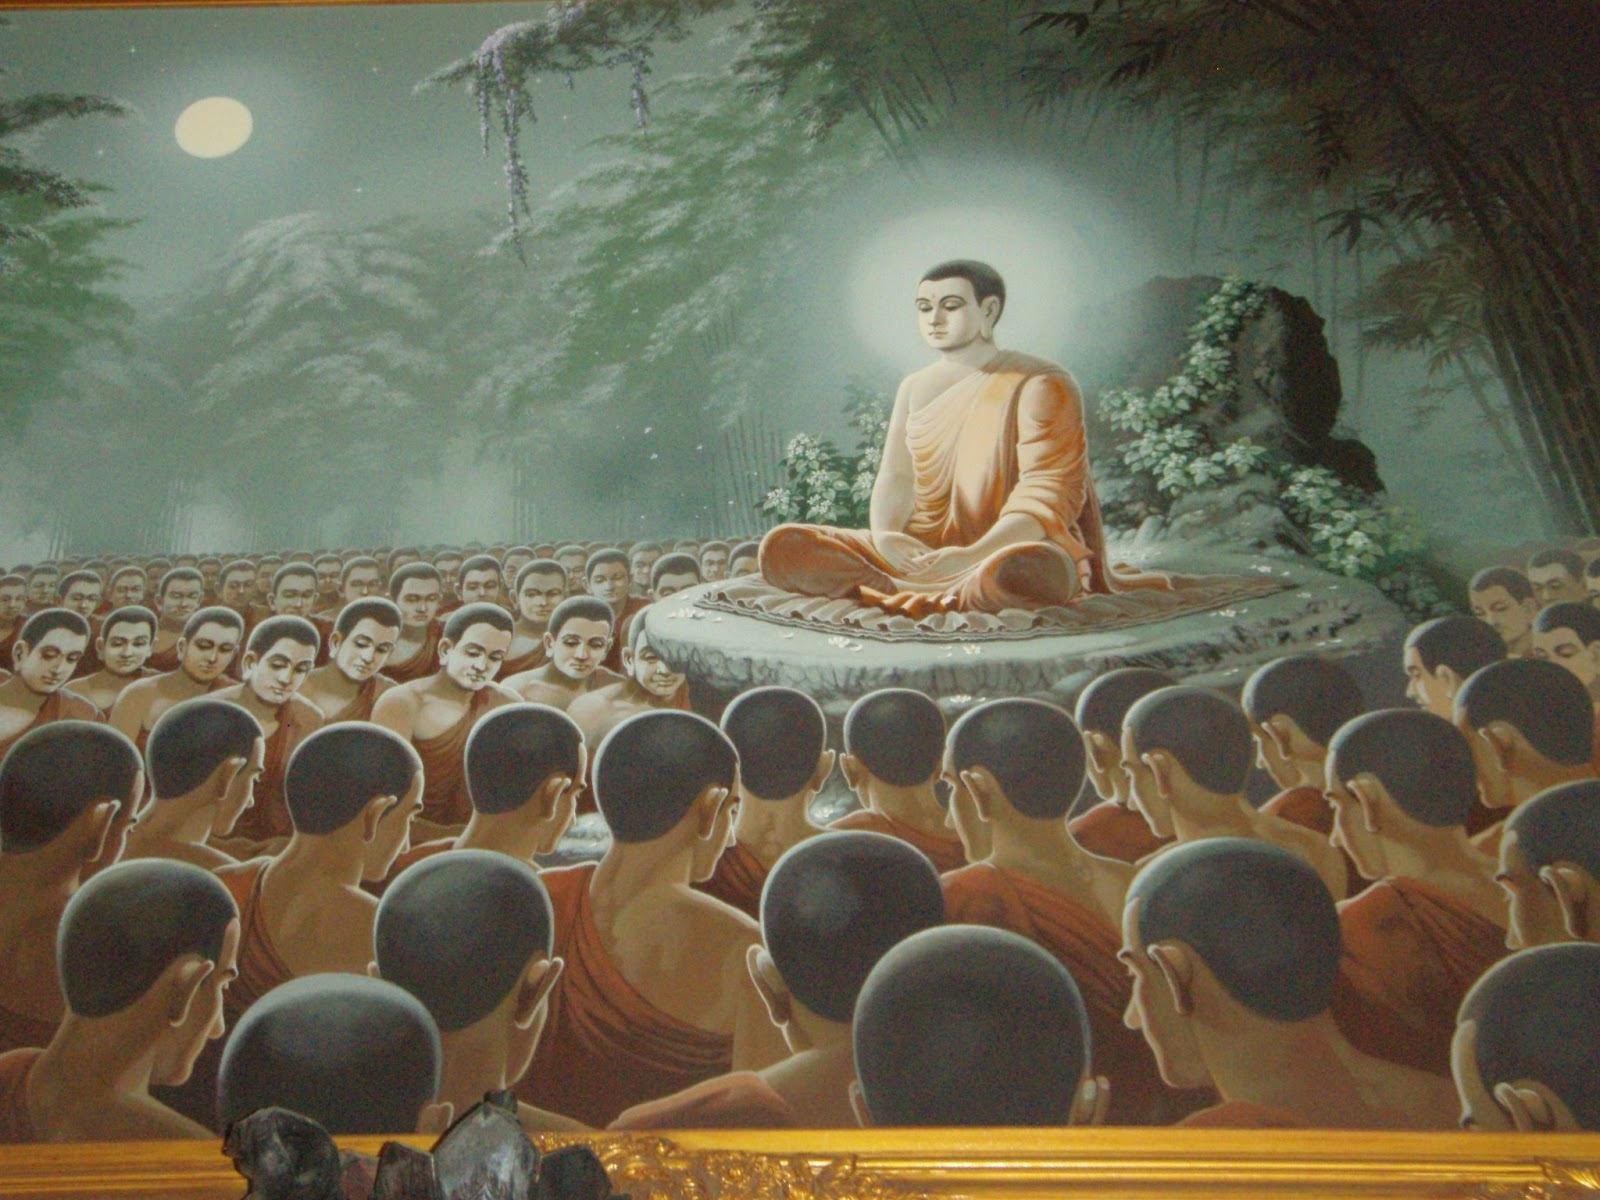 An introduction to the history and life of the buddha